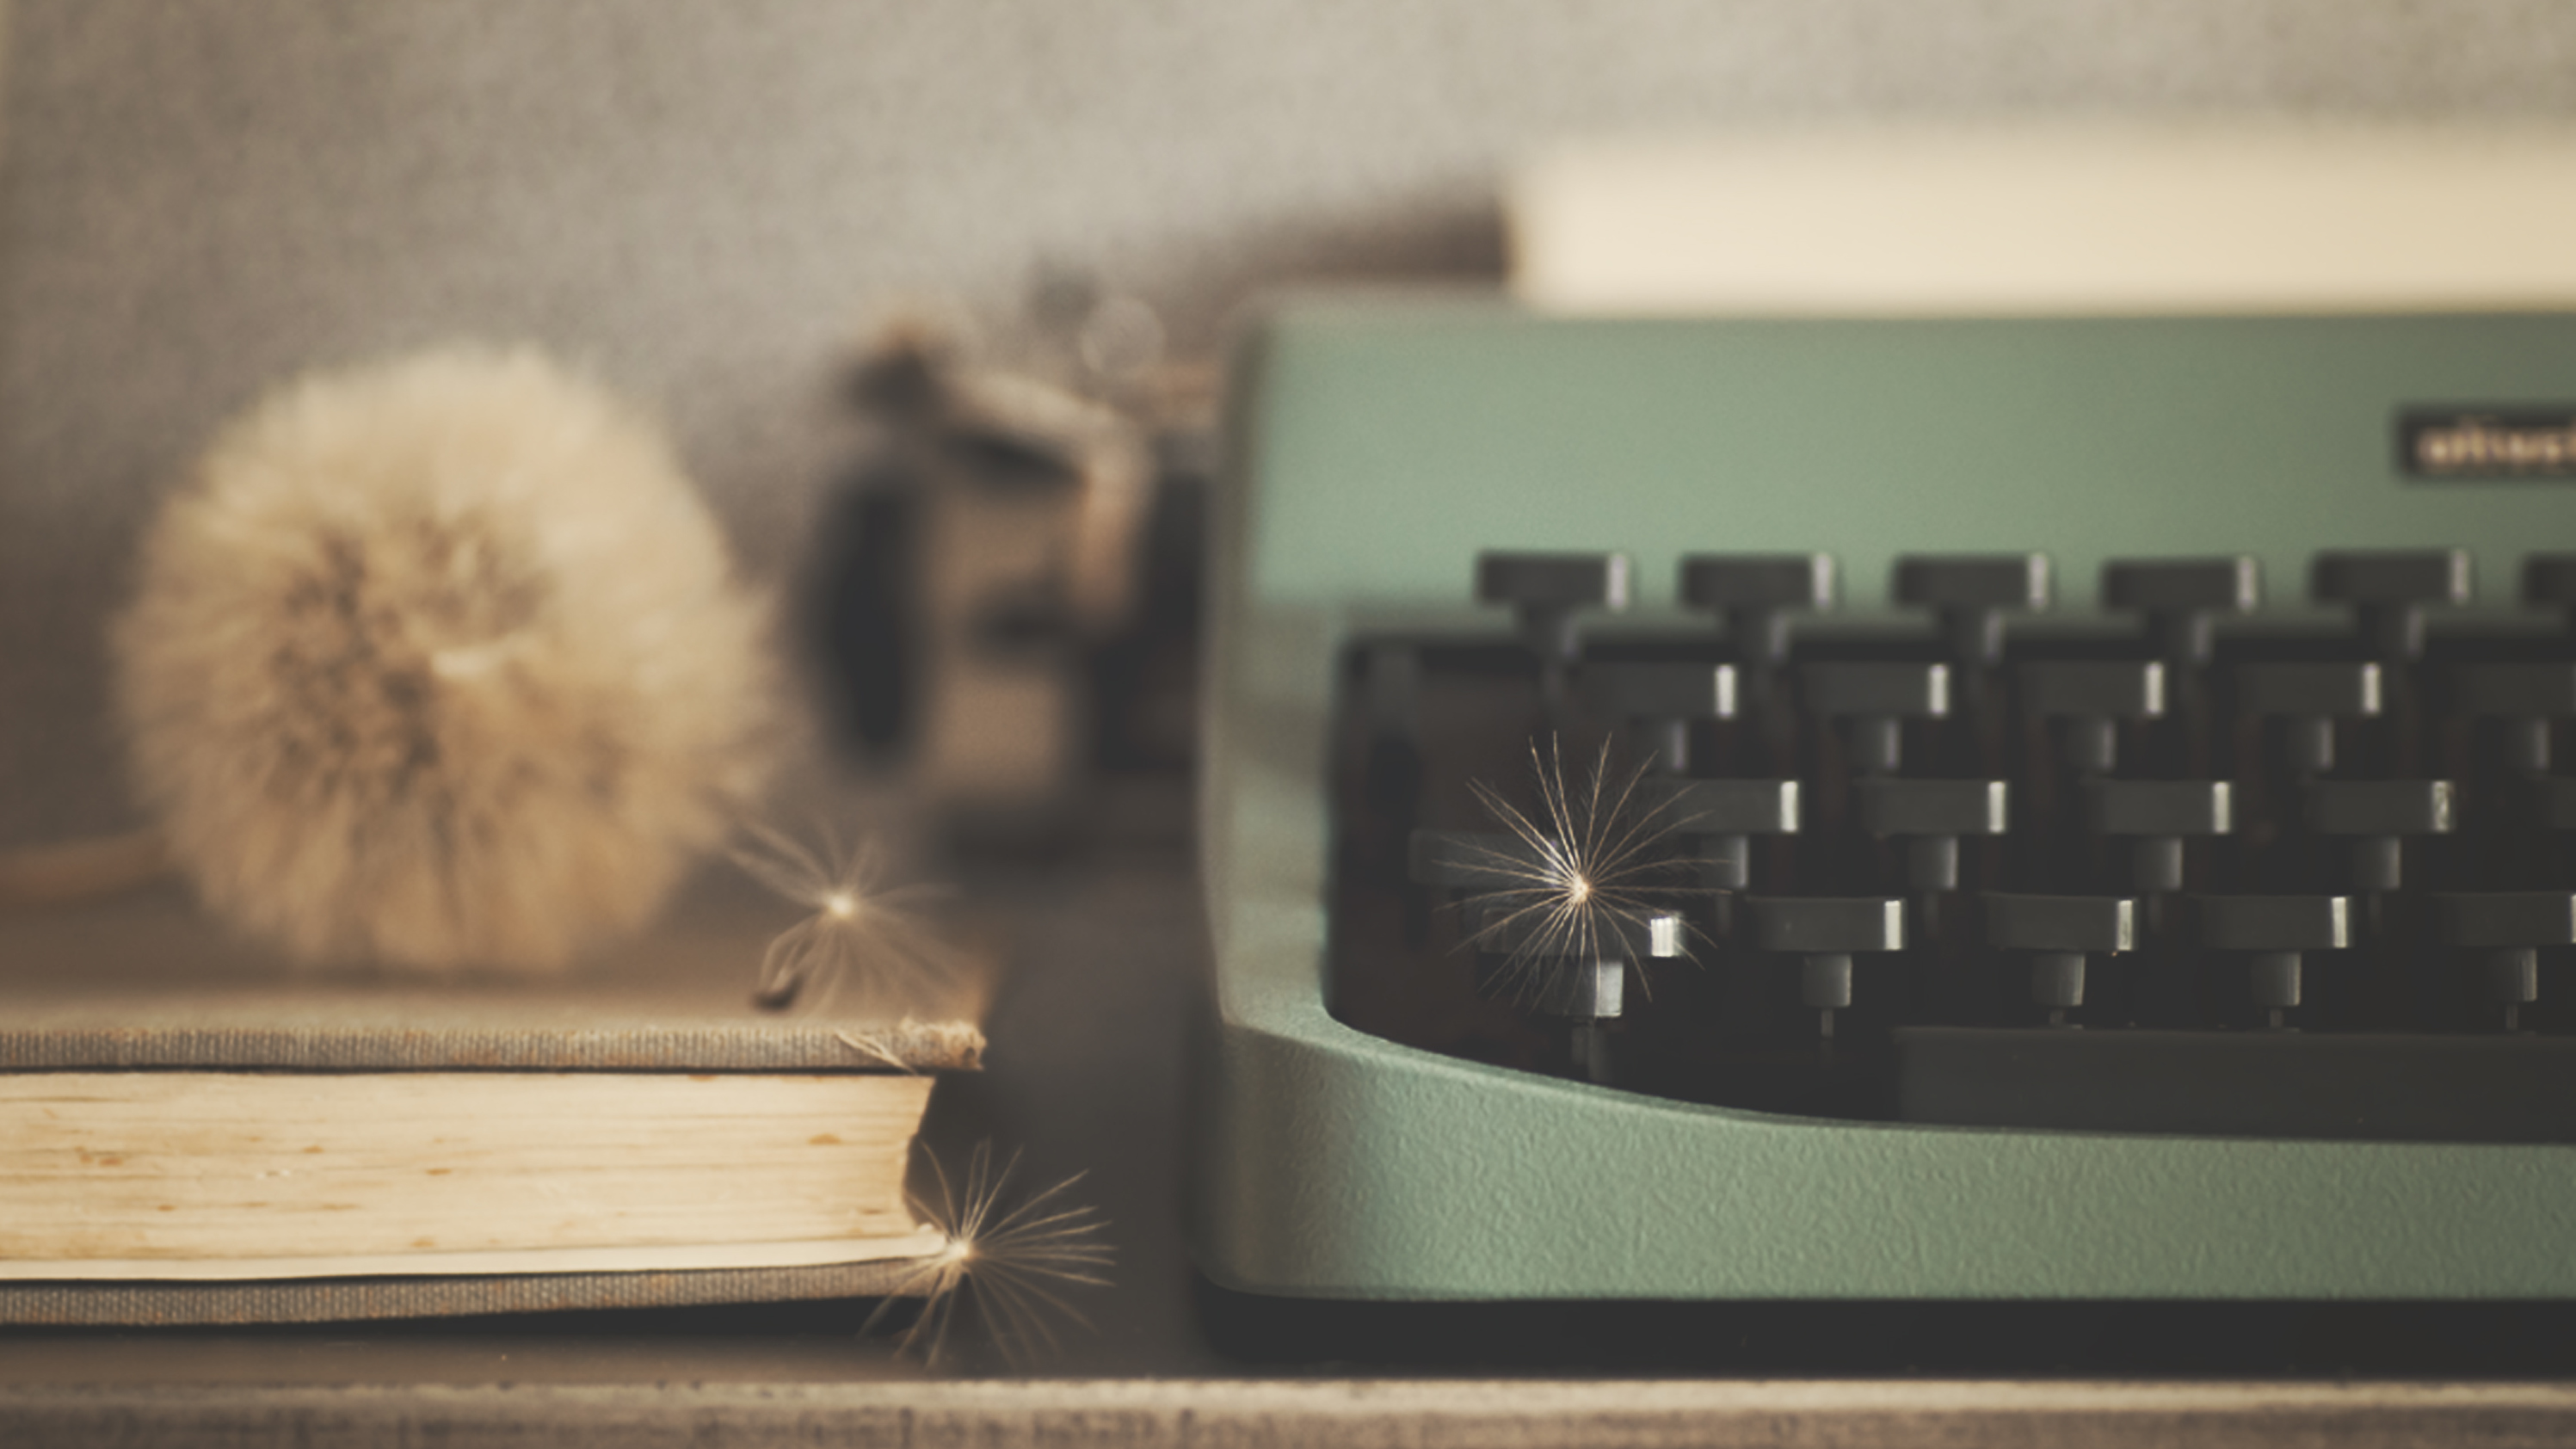 Commentator Tania Lombrozo reflects on her time writing for 13.7 — and on writing itself.